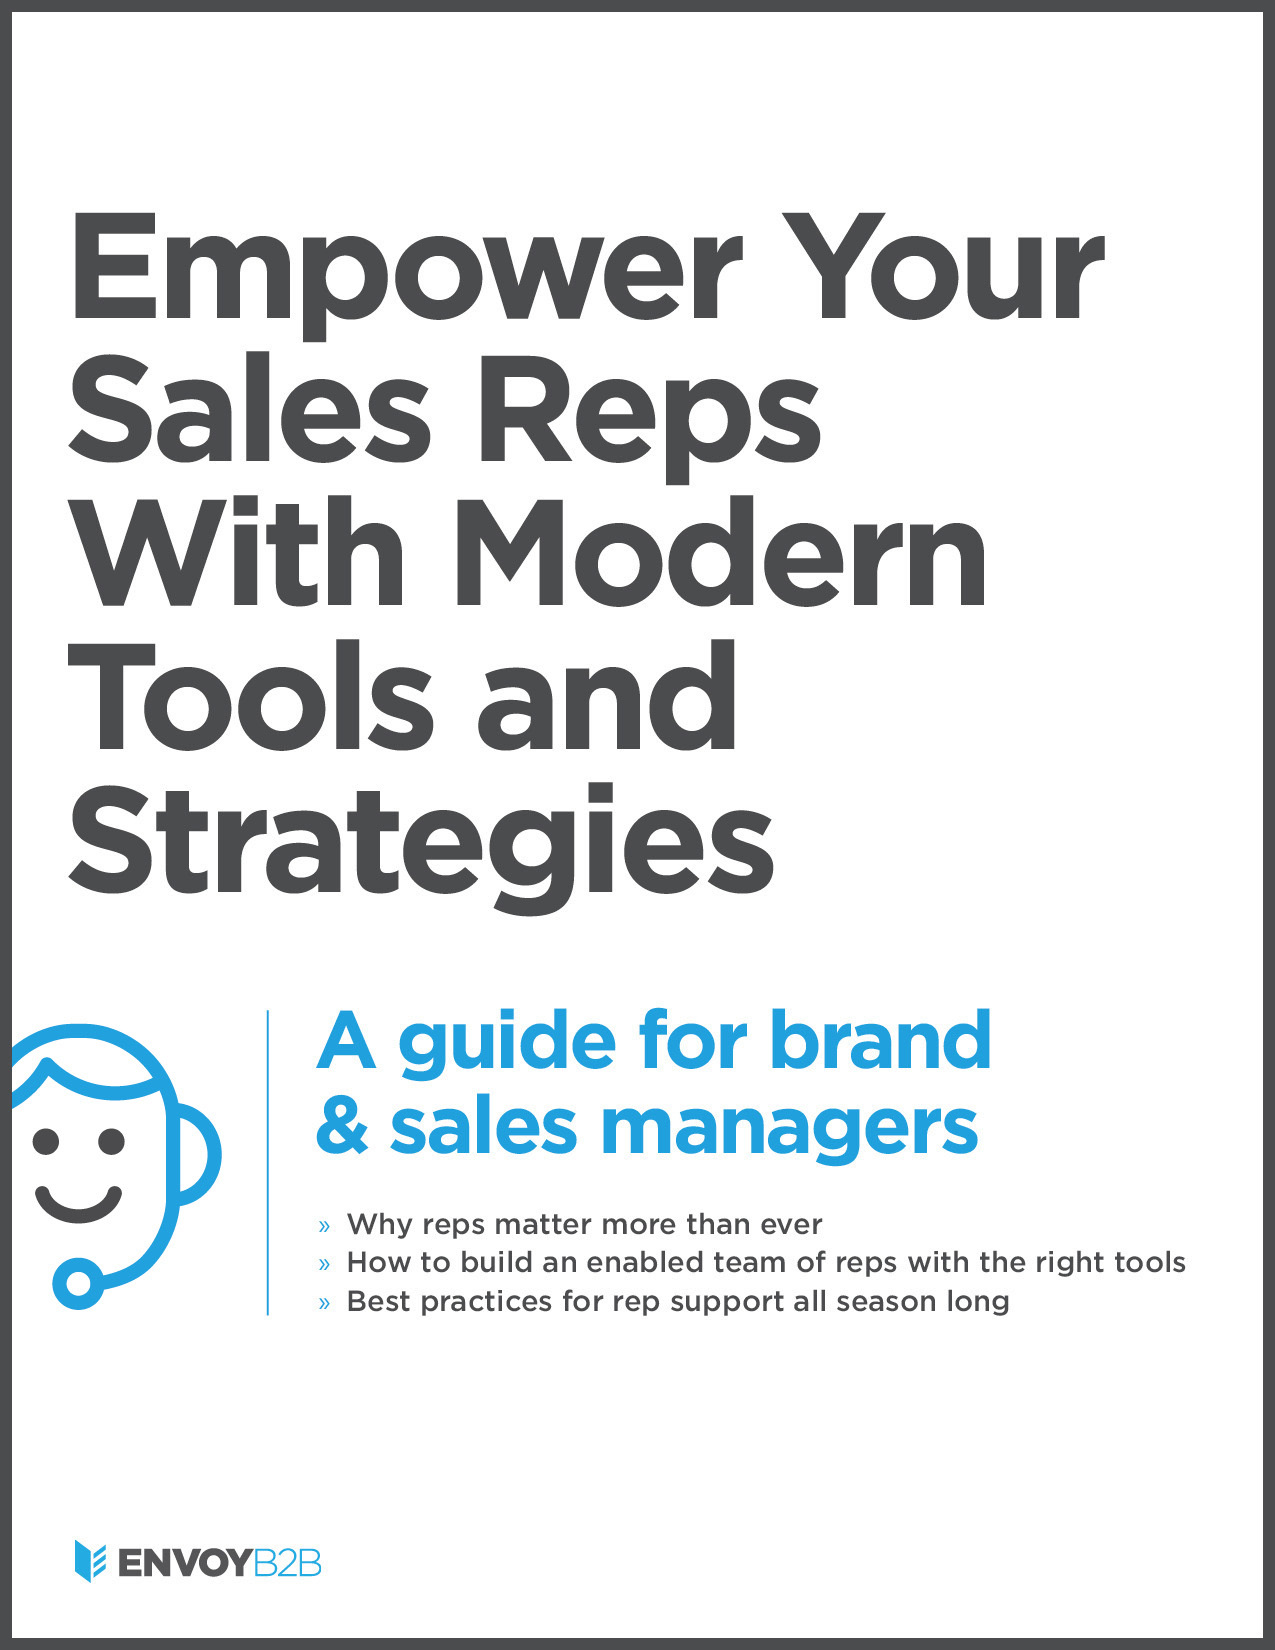 Empower Your Sales Reps With Modern Tools and Strategies